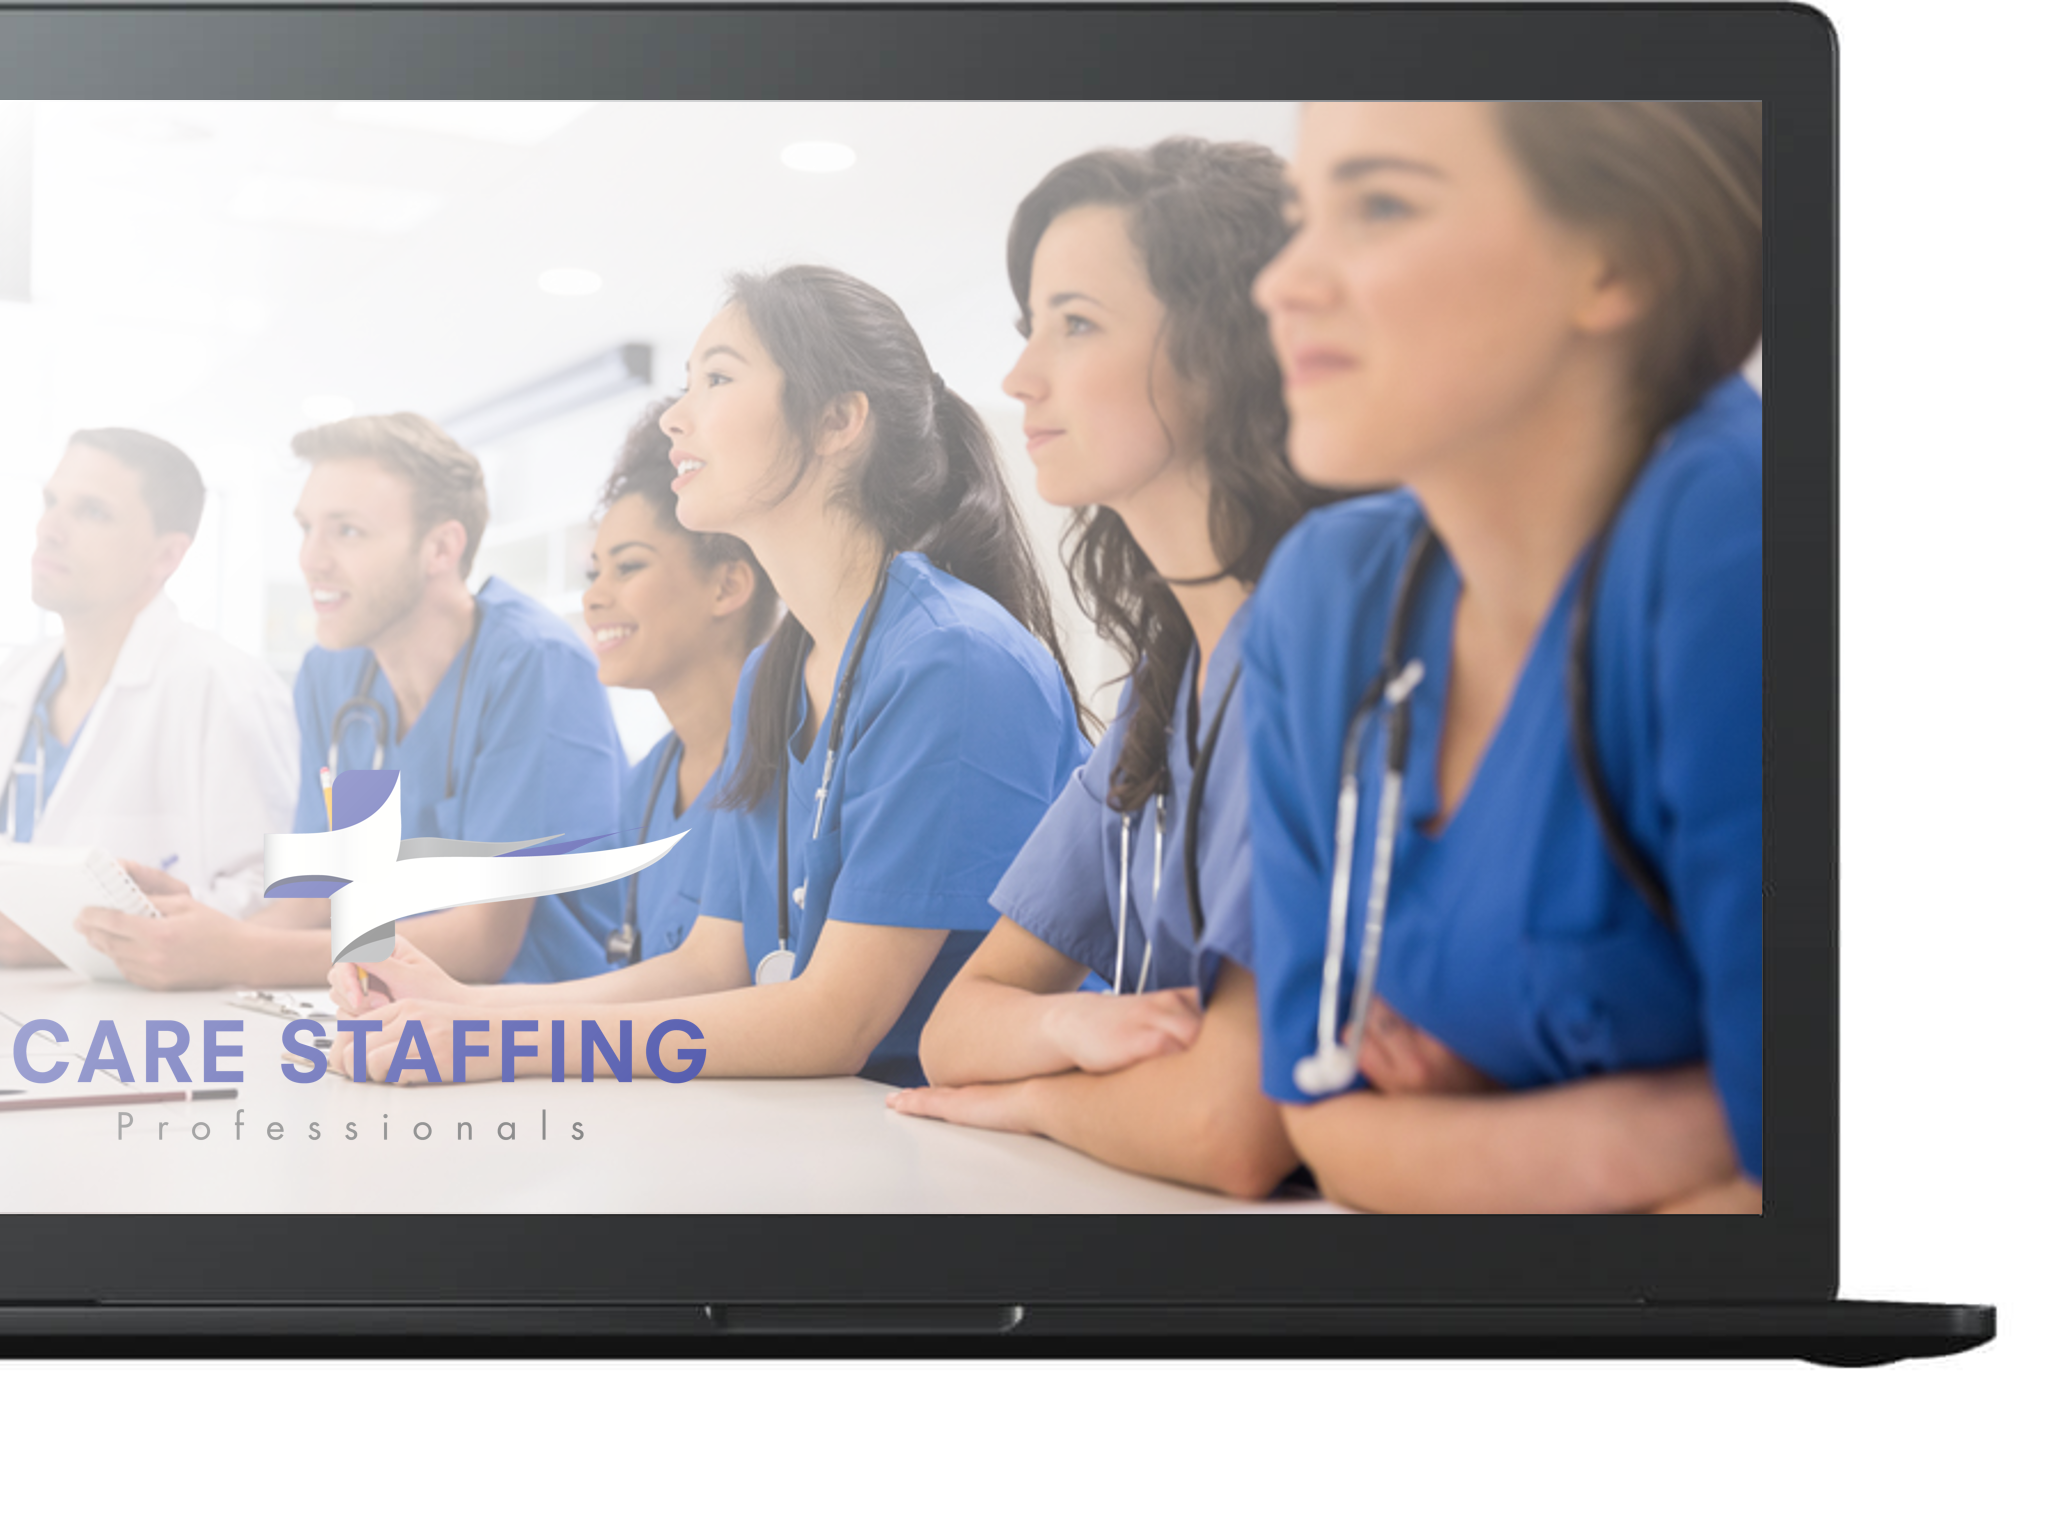 Care Staffing Laptop